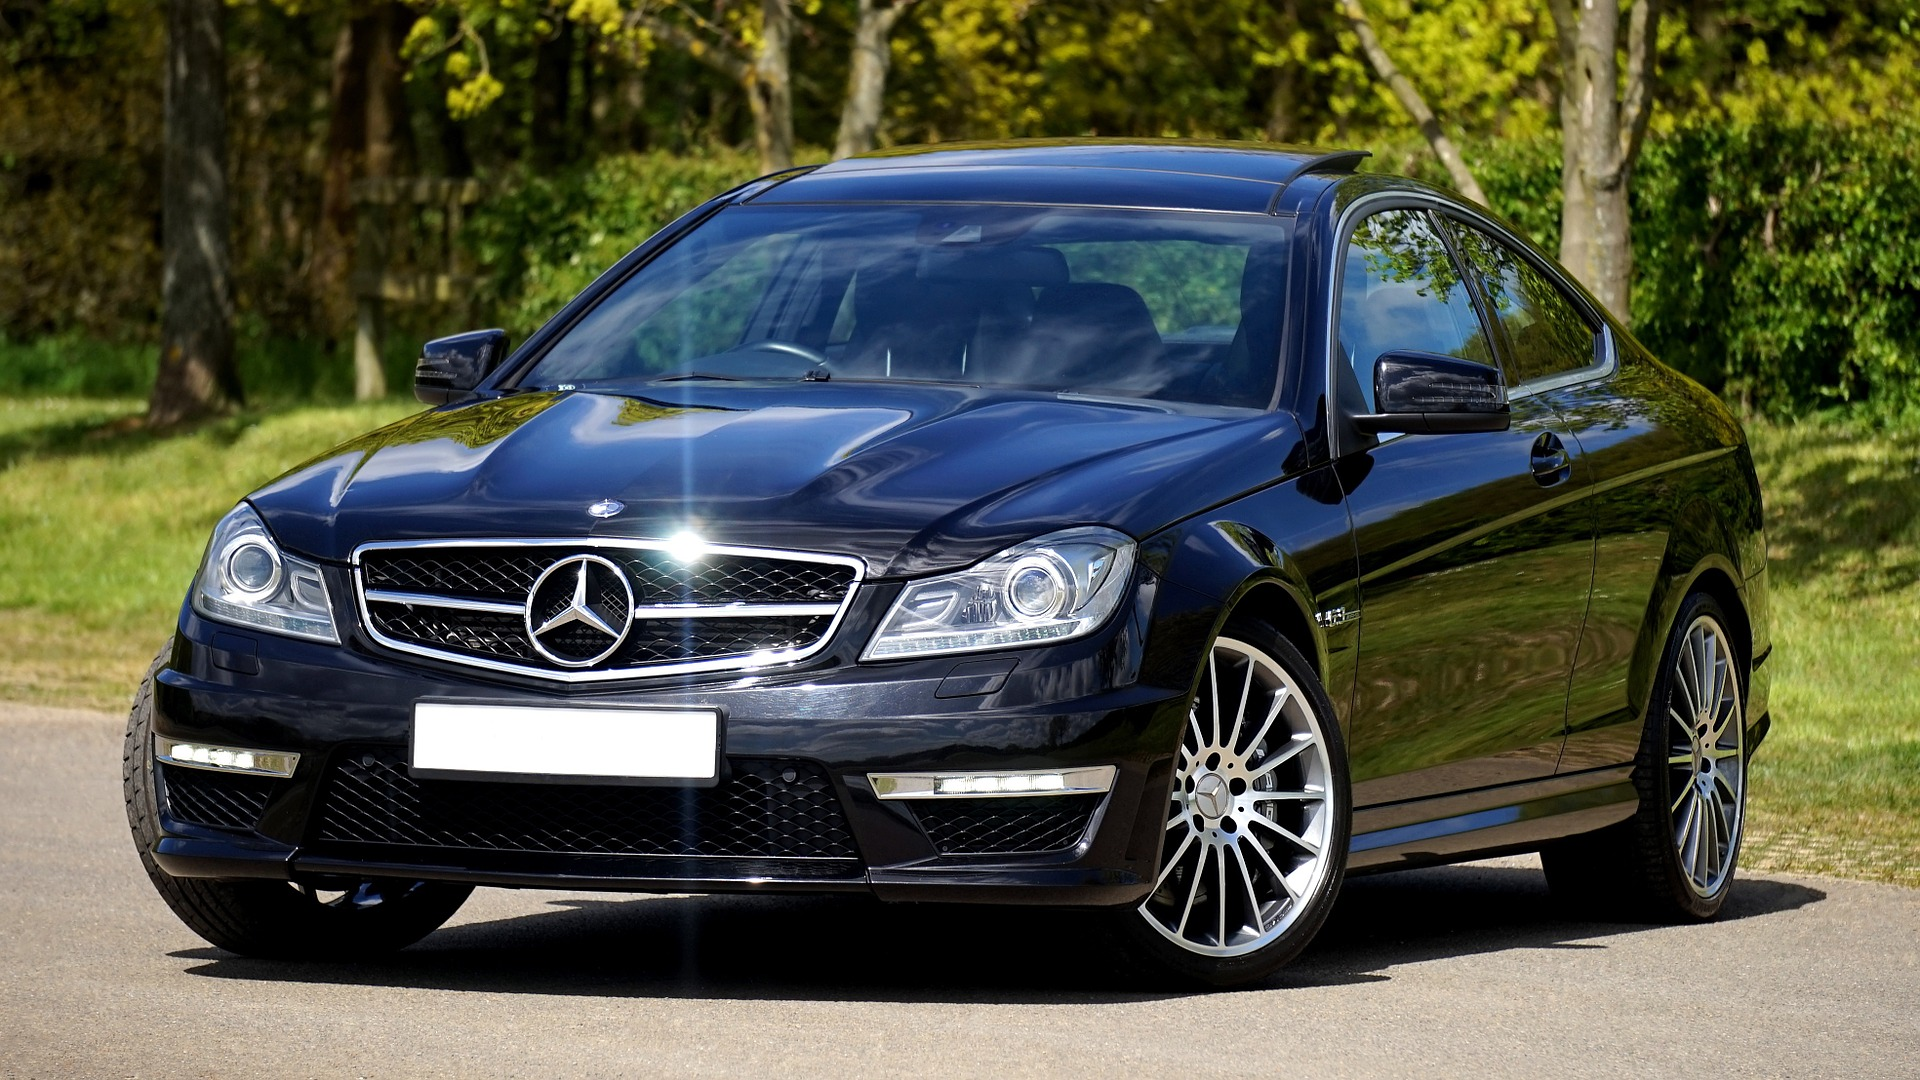 Black mercedes car